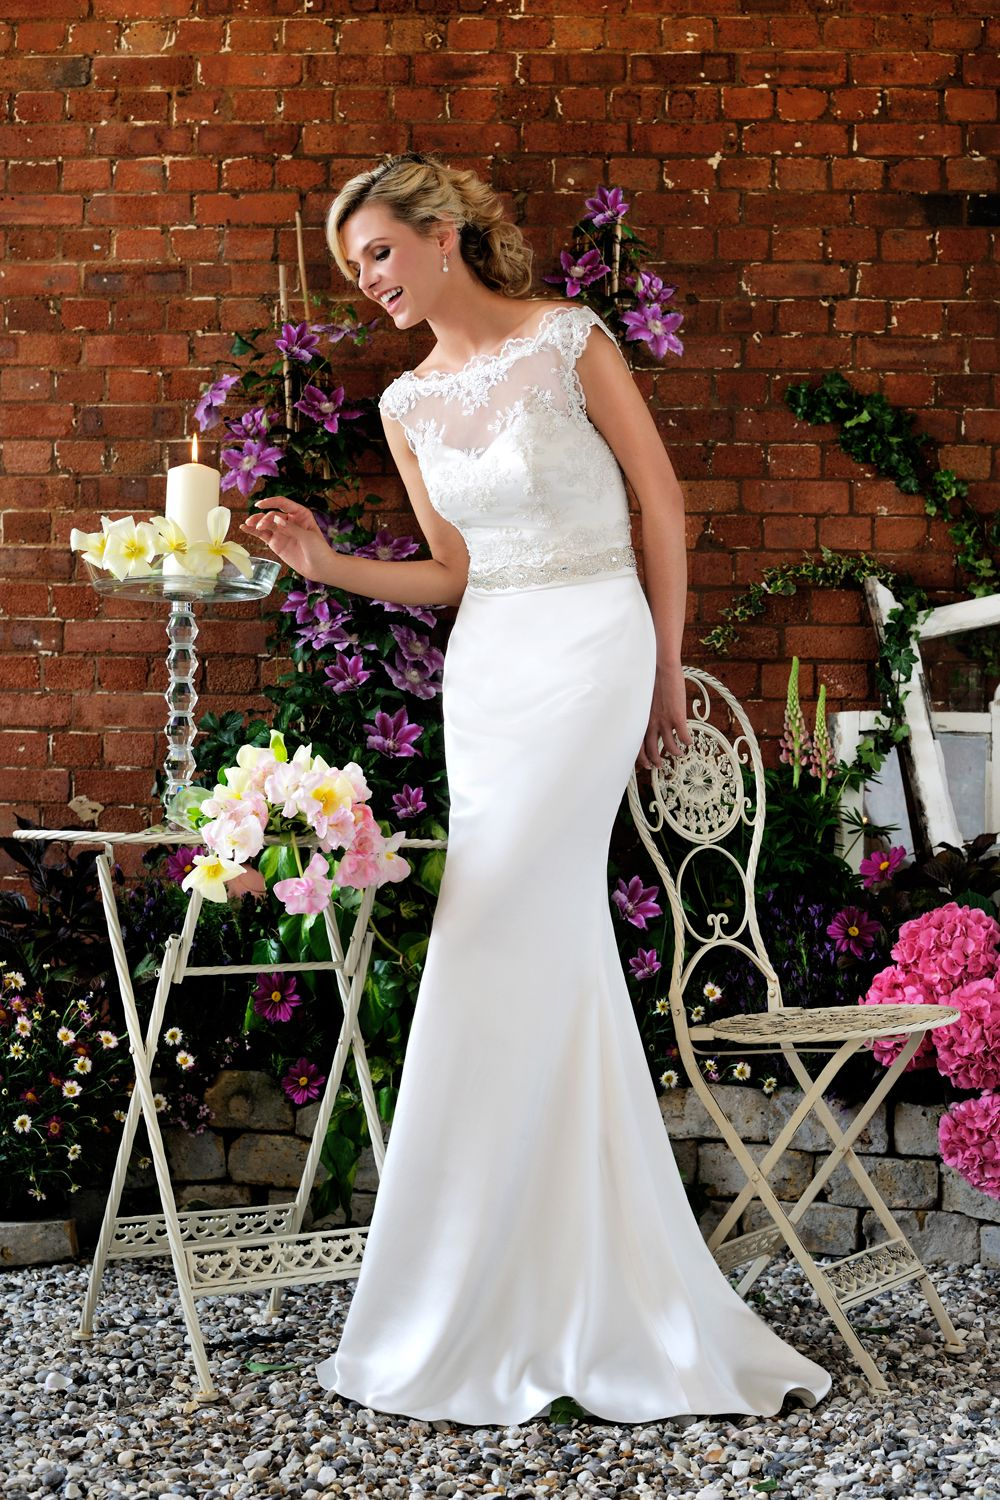 MDS By Margaret Moreland Bridal Wear Dublin